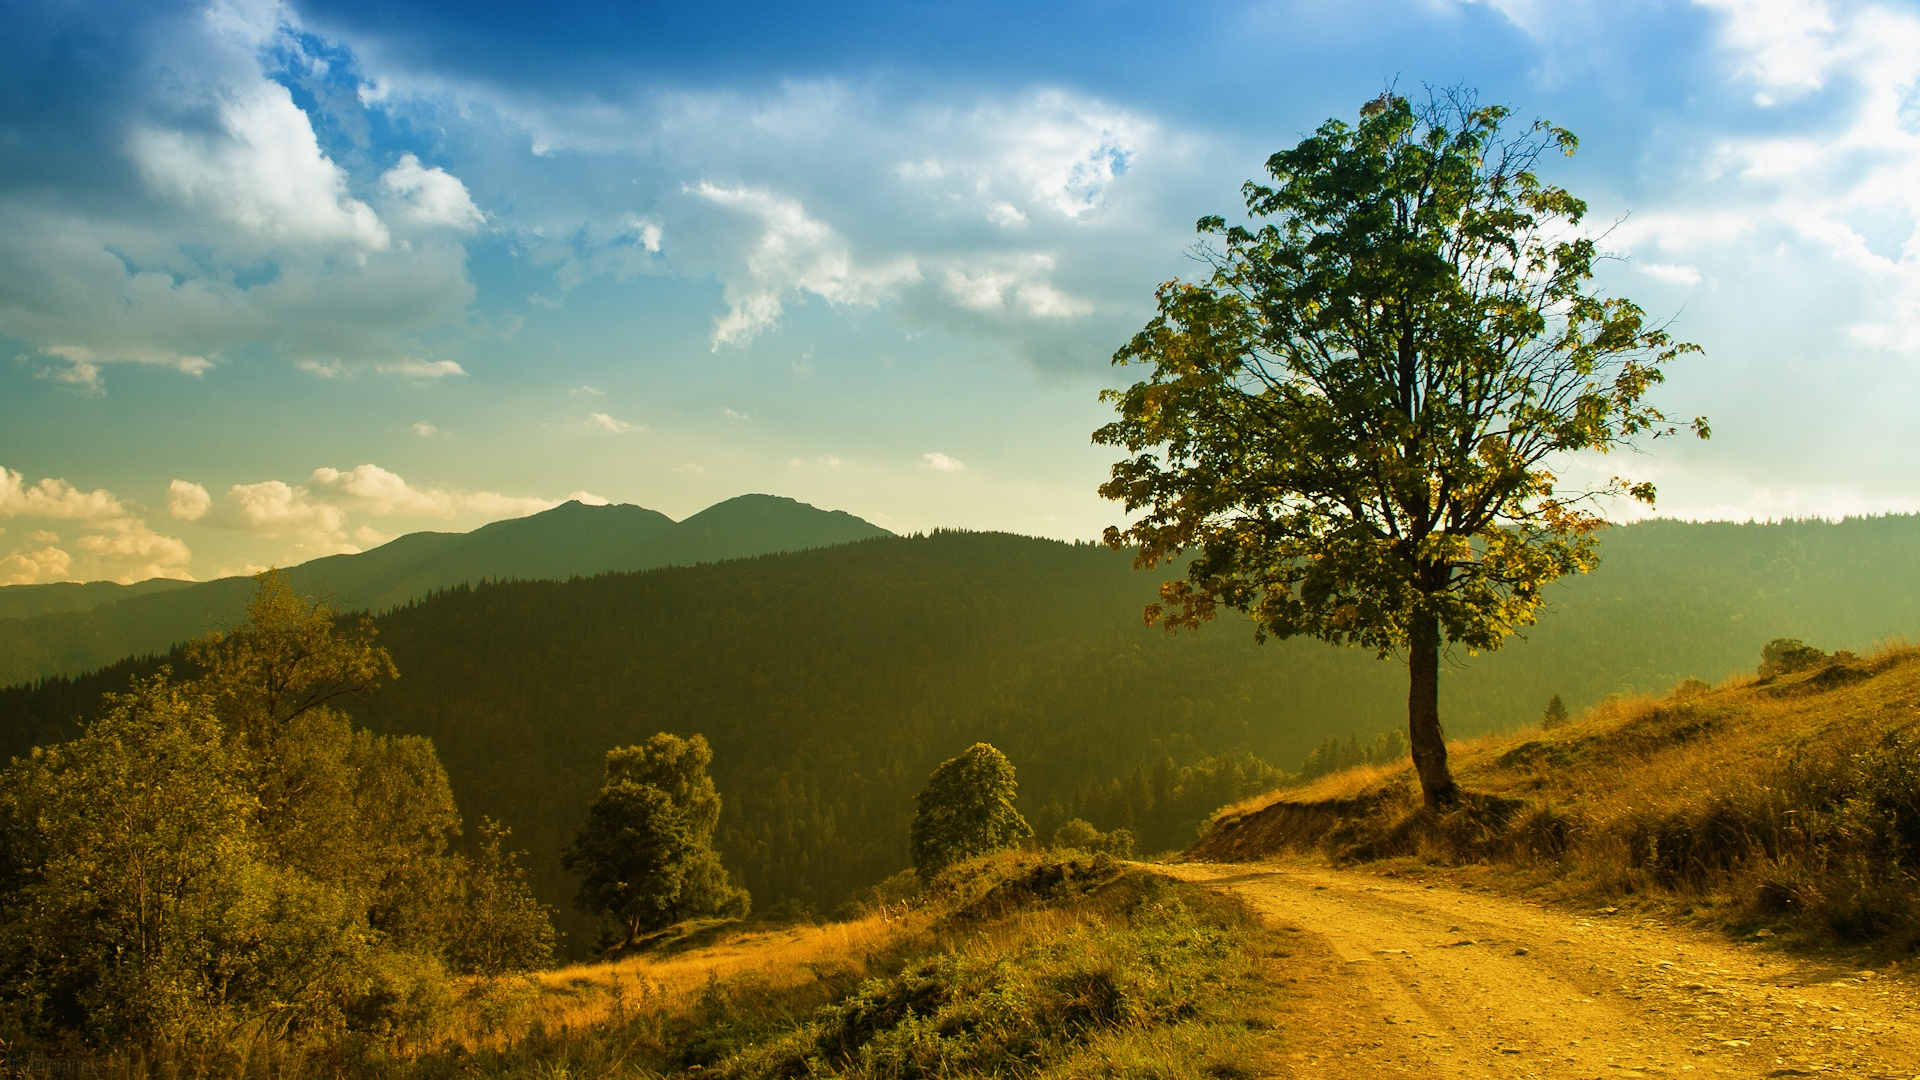 wallpaper mountain forest trees landscape, grass footpath, morning